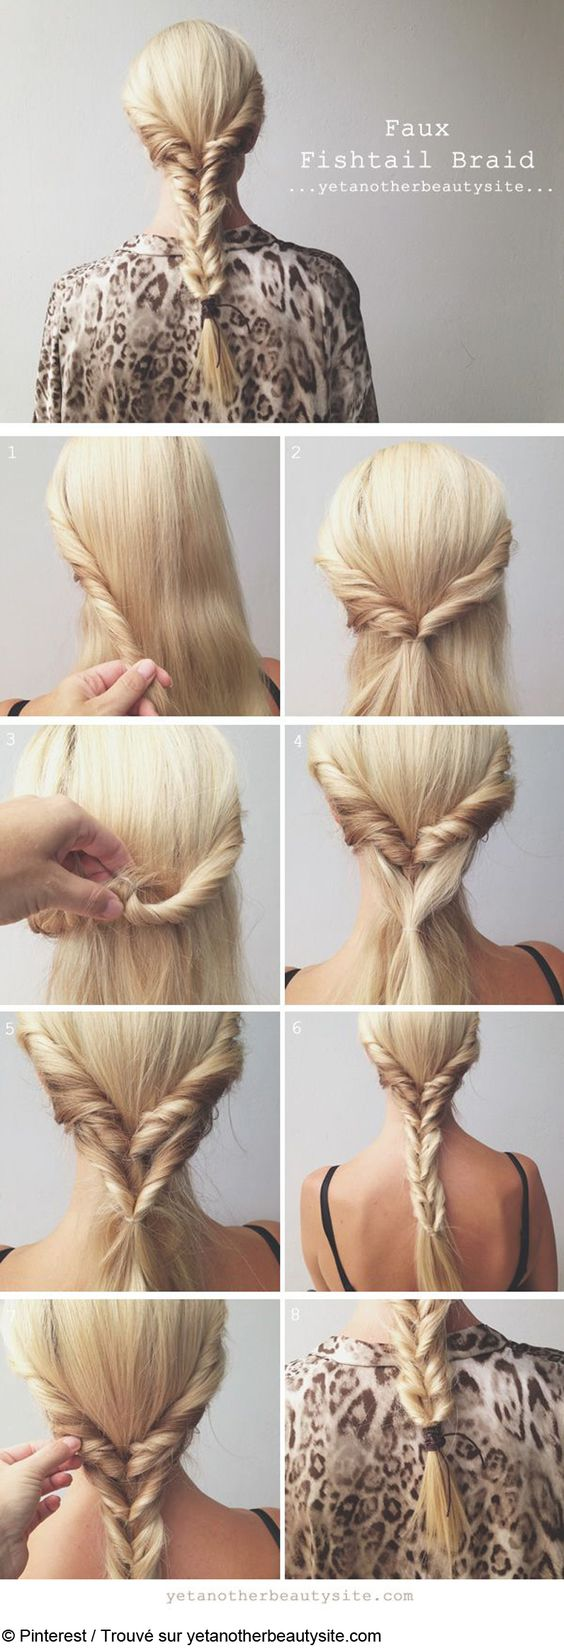 Queue De Poisson Coiffures And Tresses On Pinterest